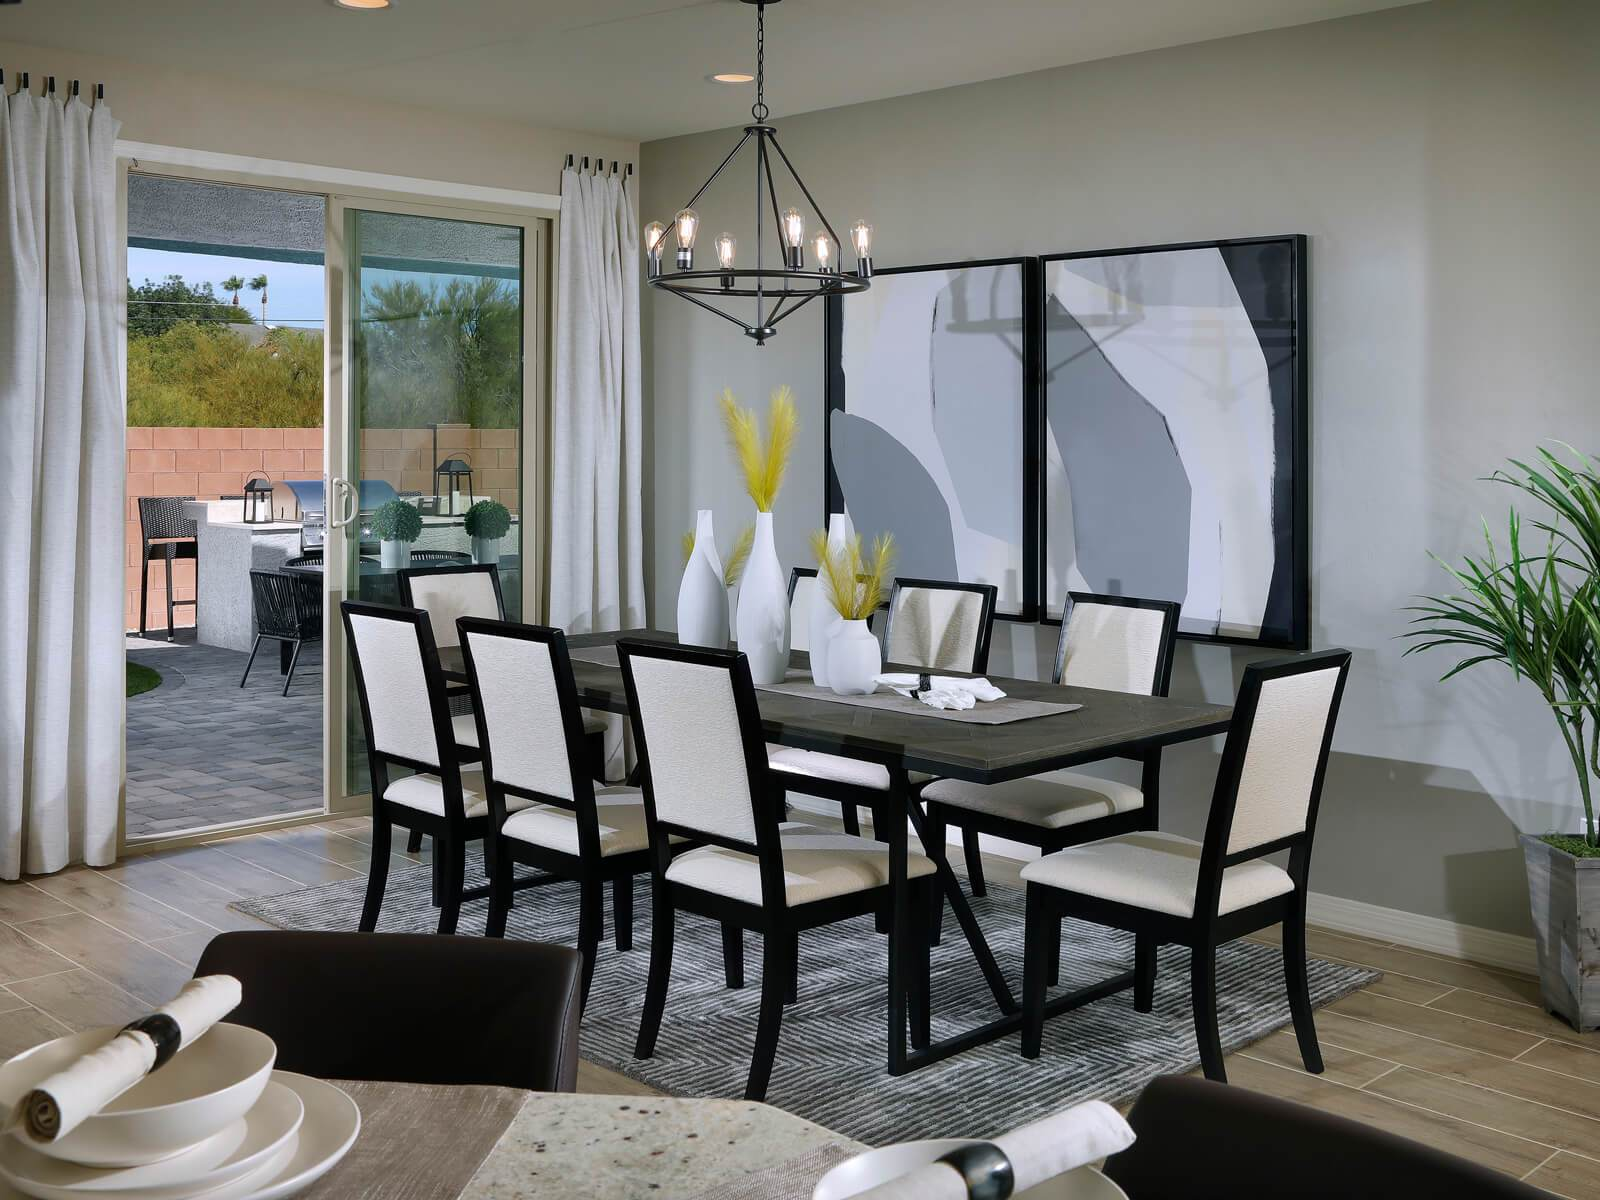 Living Area featured in the Parish By Meritage Homes in Tucson, AZ